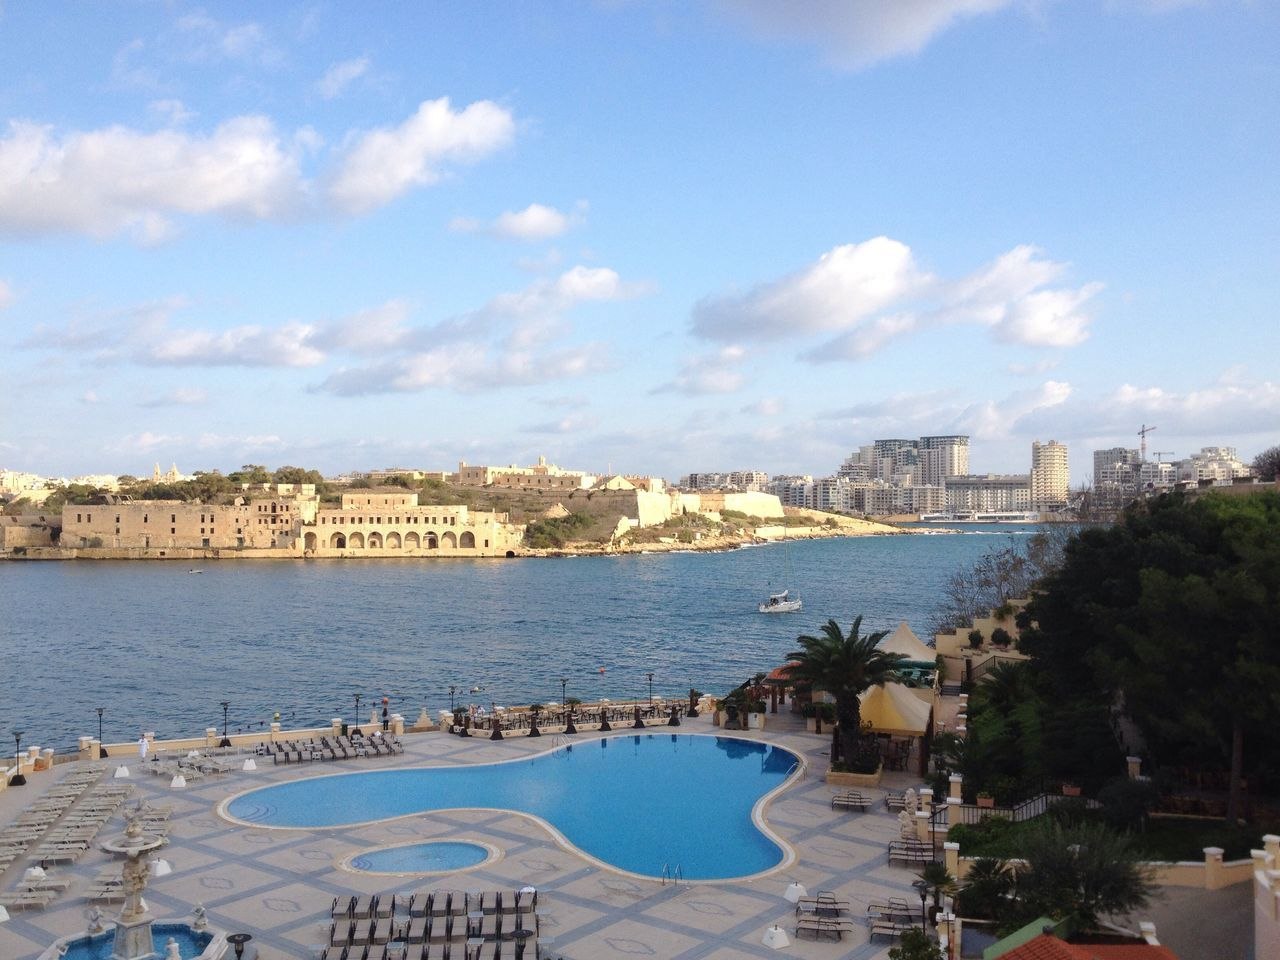 Water Mediterranean  Sea And Sky Malta Excelsiorhotel Pool Fortress View Sunlight Pool View Fall Beauty Gazing The Purist (no Edit, No Filter) IPhoneography Fleeing Seasons Port View Traveling Off Season